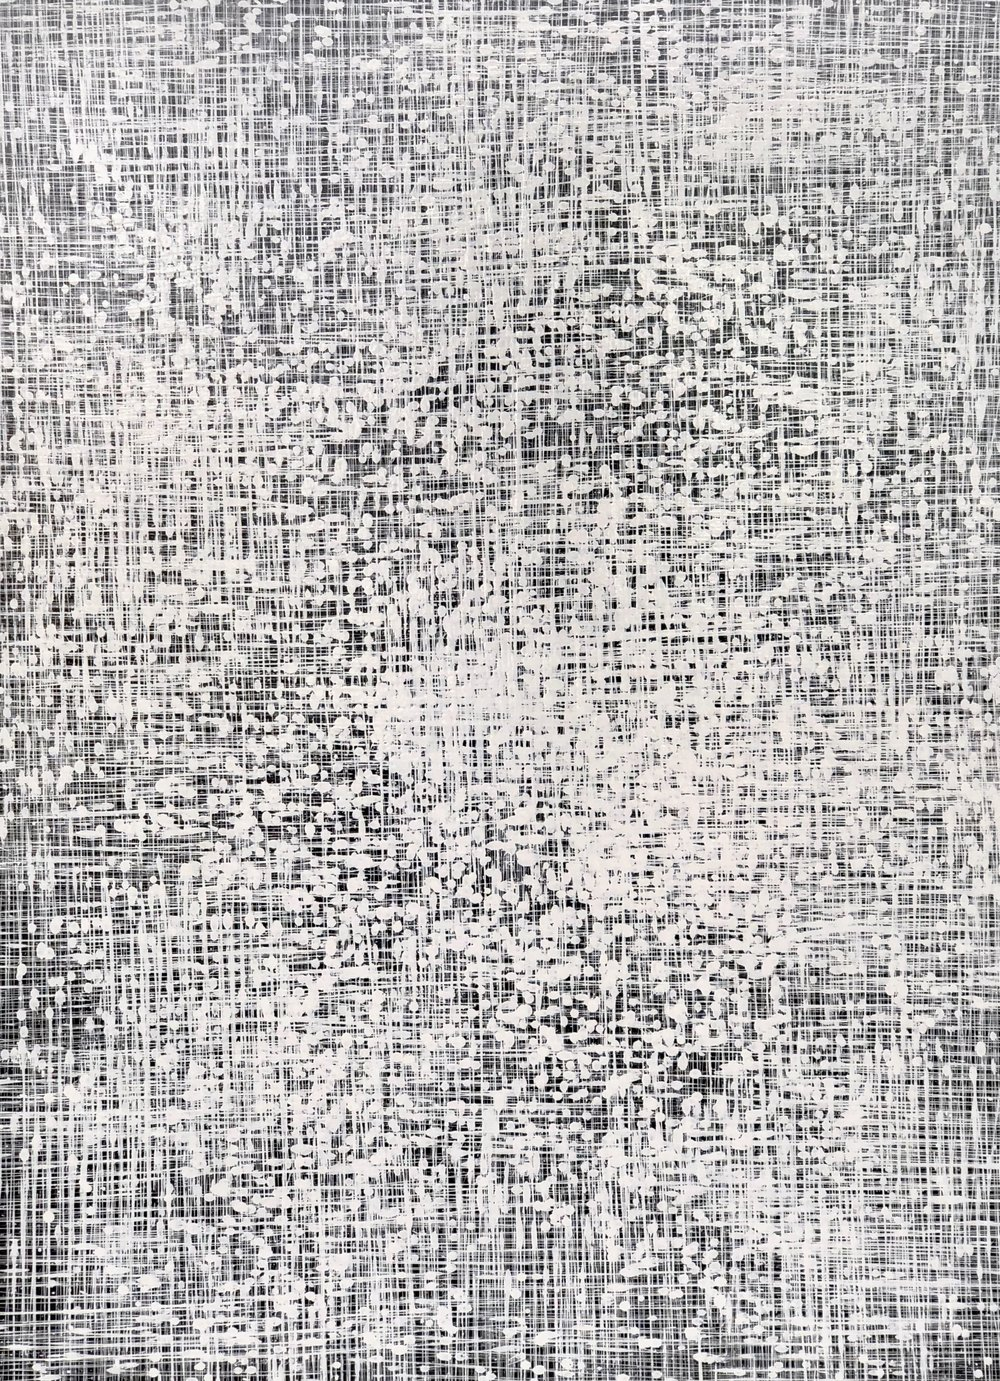 Above: Wilson Lin,  A Glimmering Sheet,  2018, Fractal series, Synthetic Polymer Paint on Linen, 122 x 91.5cm, $5,500